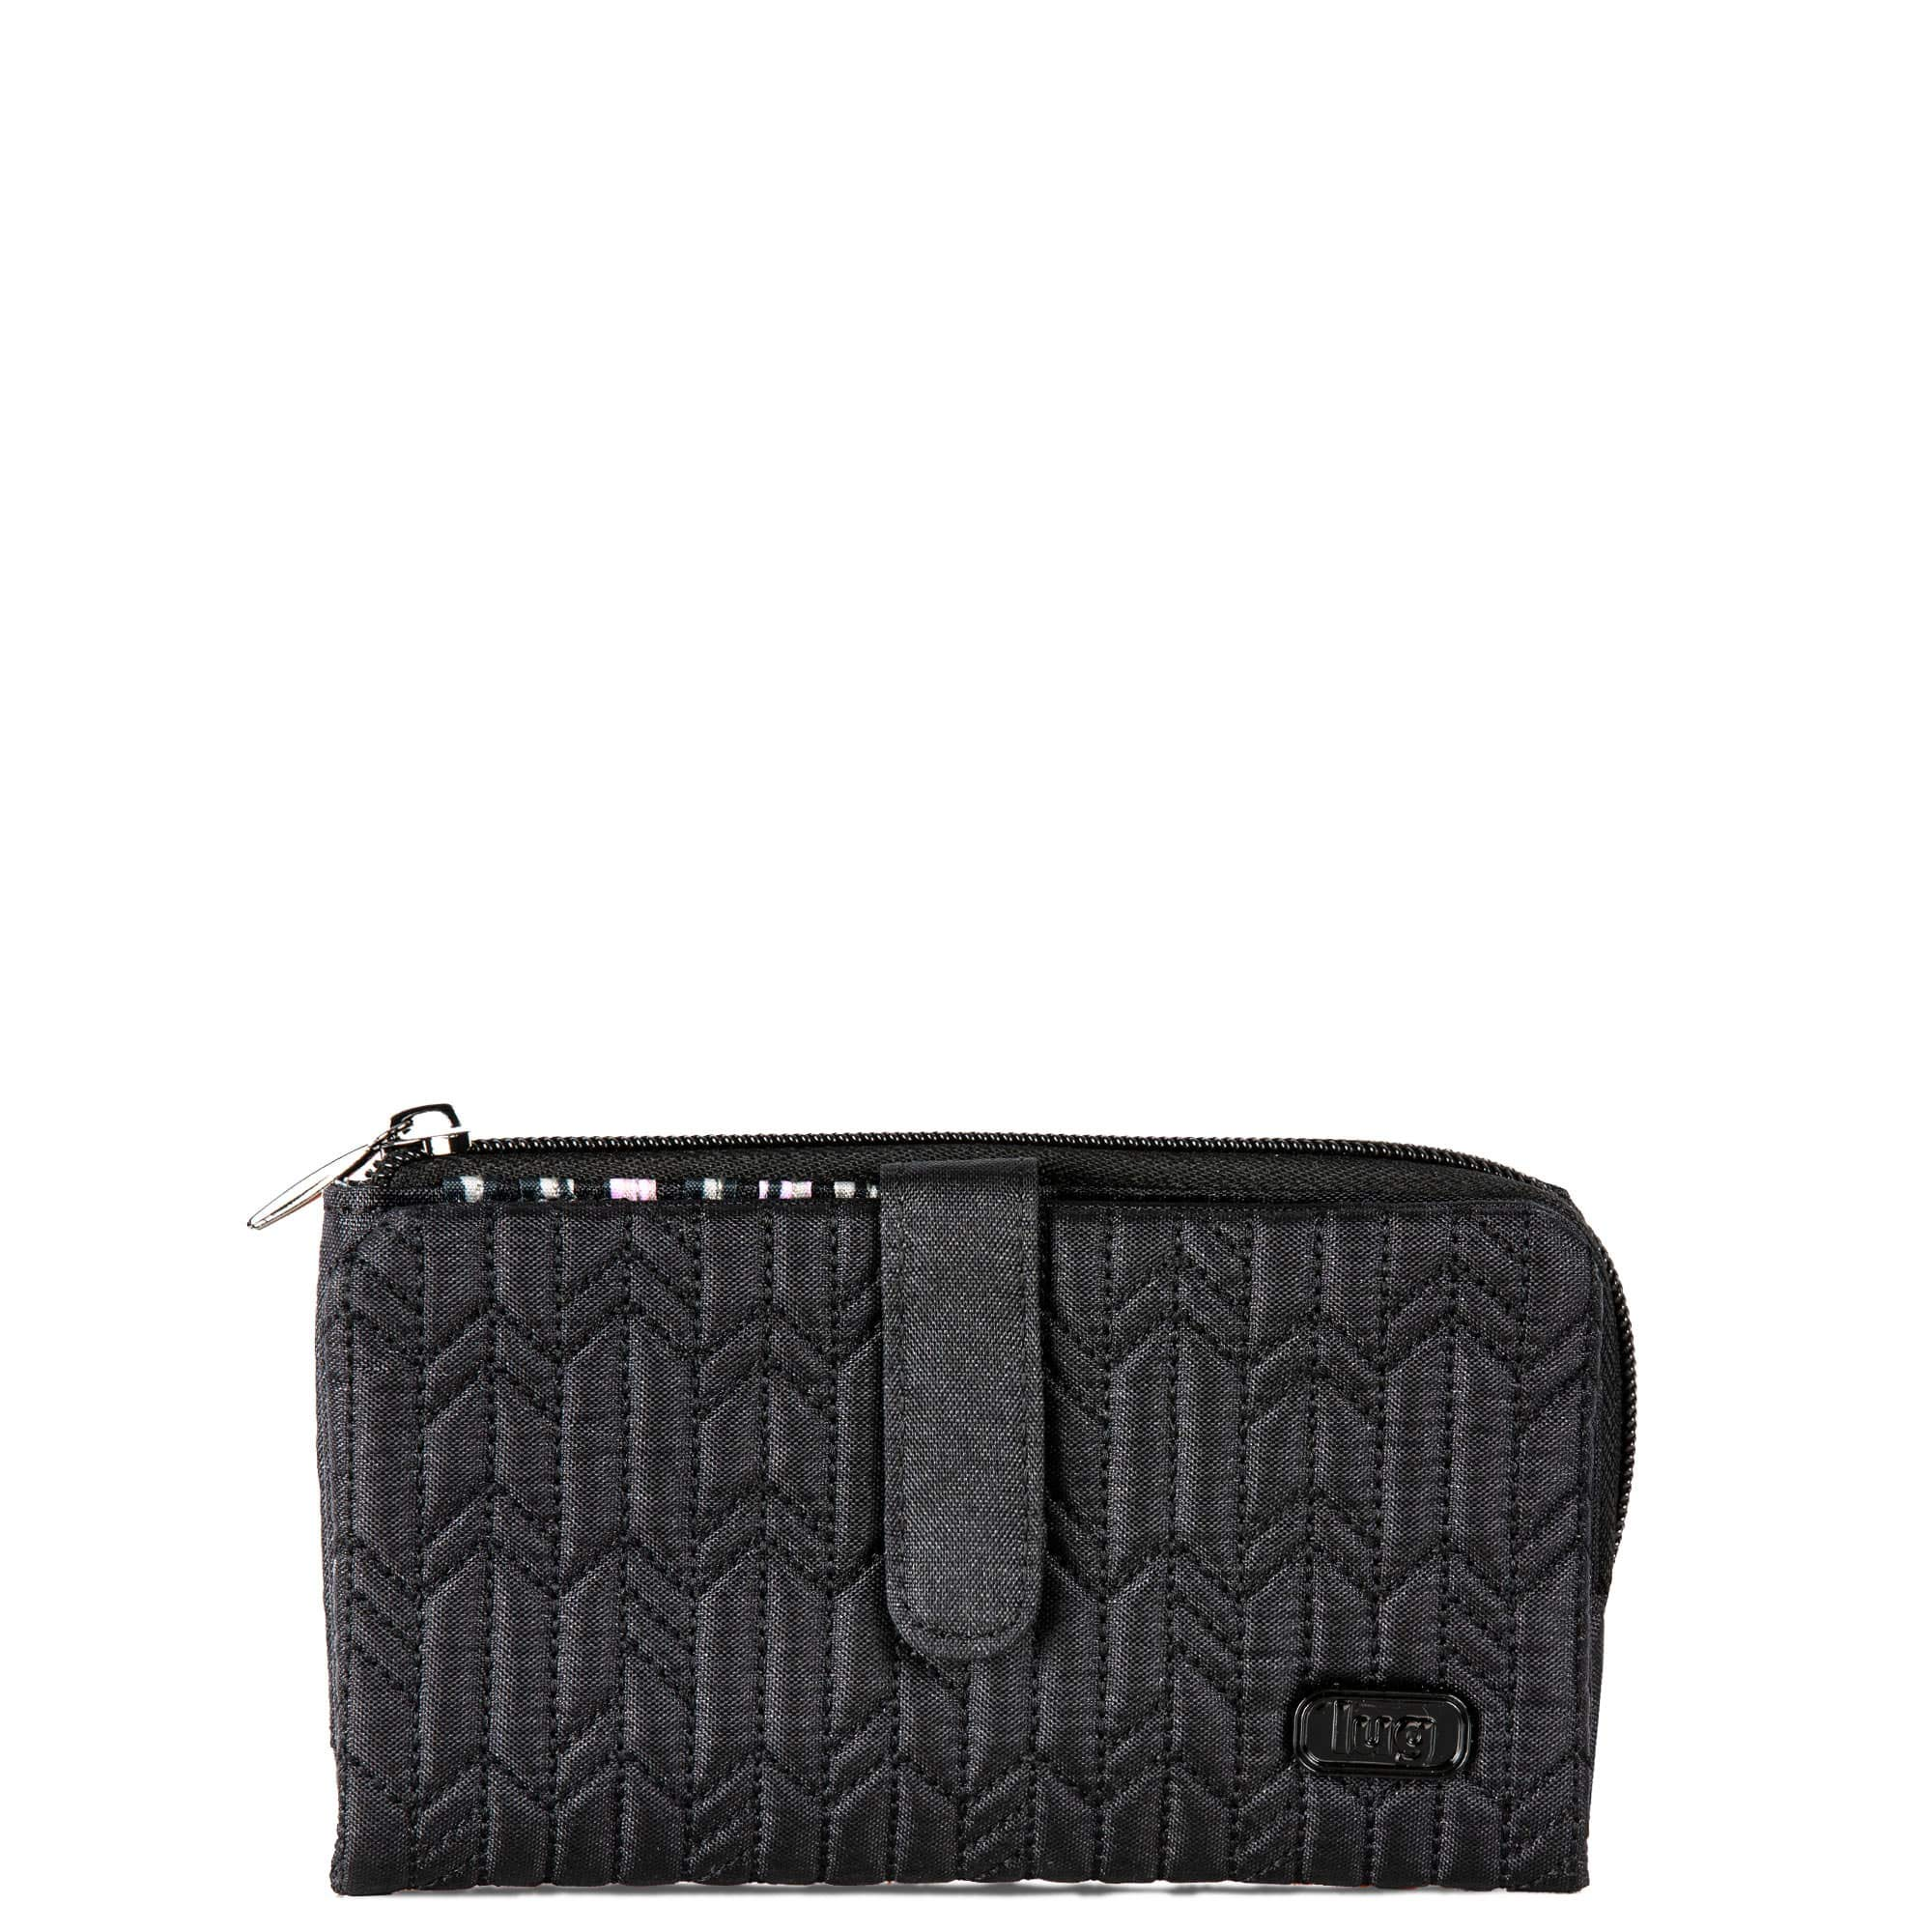 Lug Women's Tram Wallet, Shimmer Black